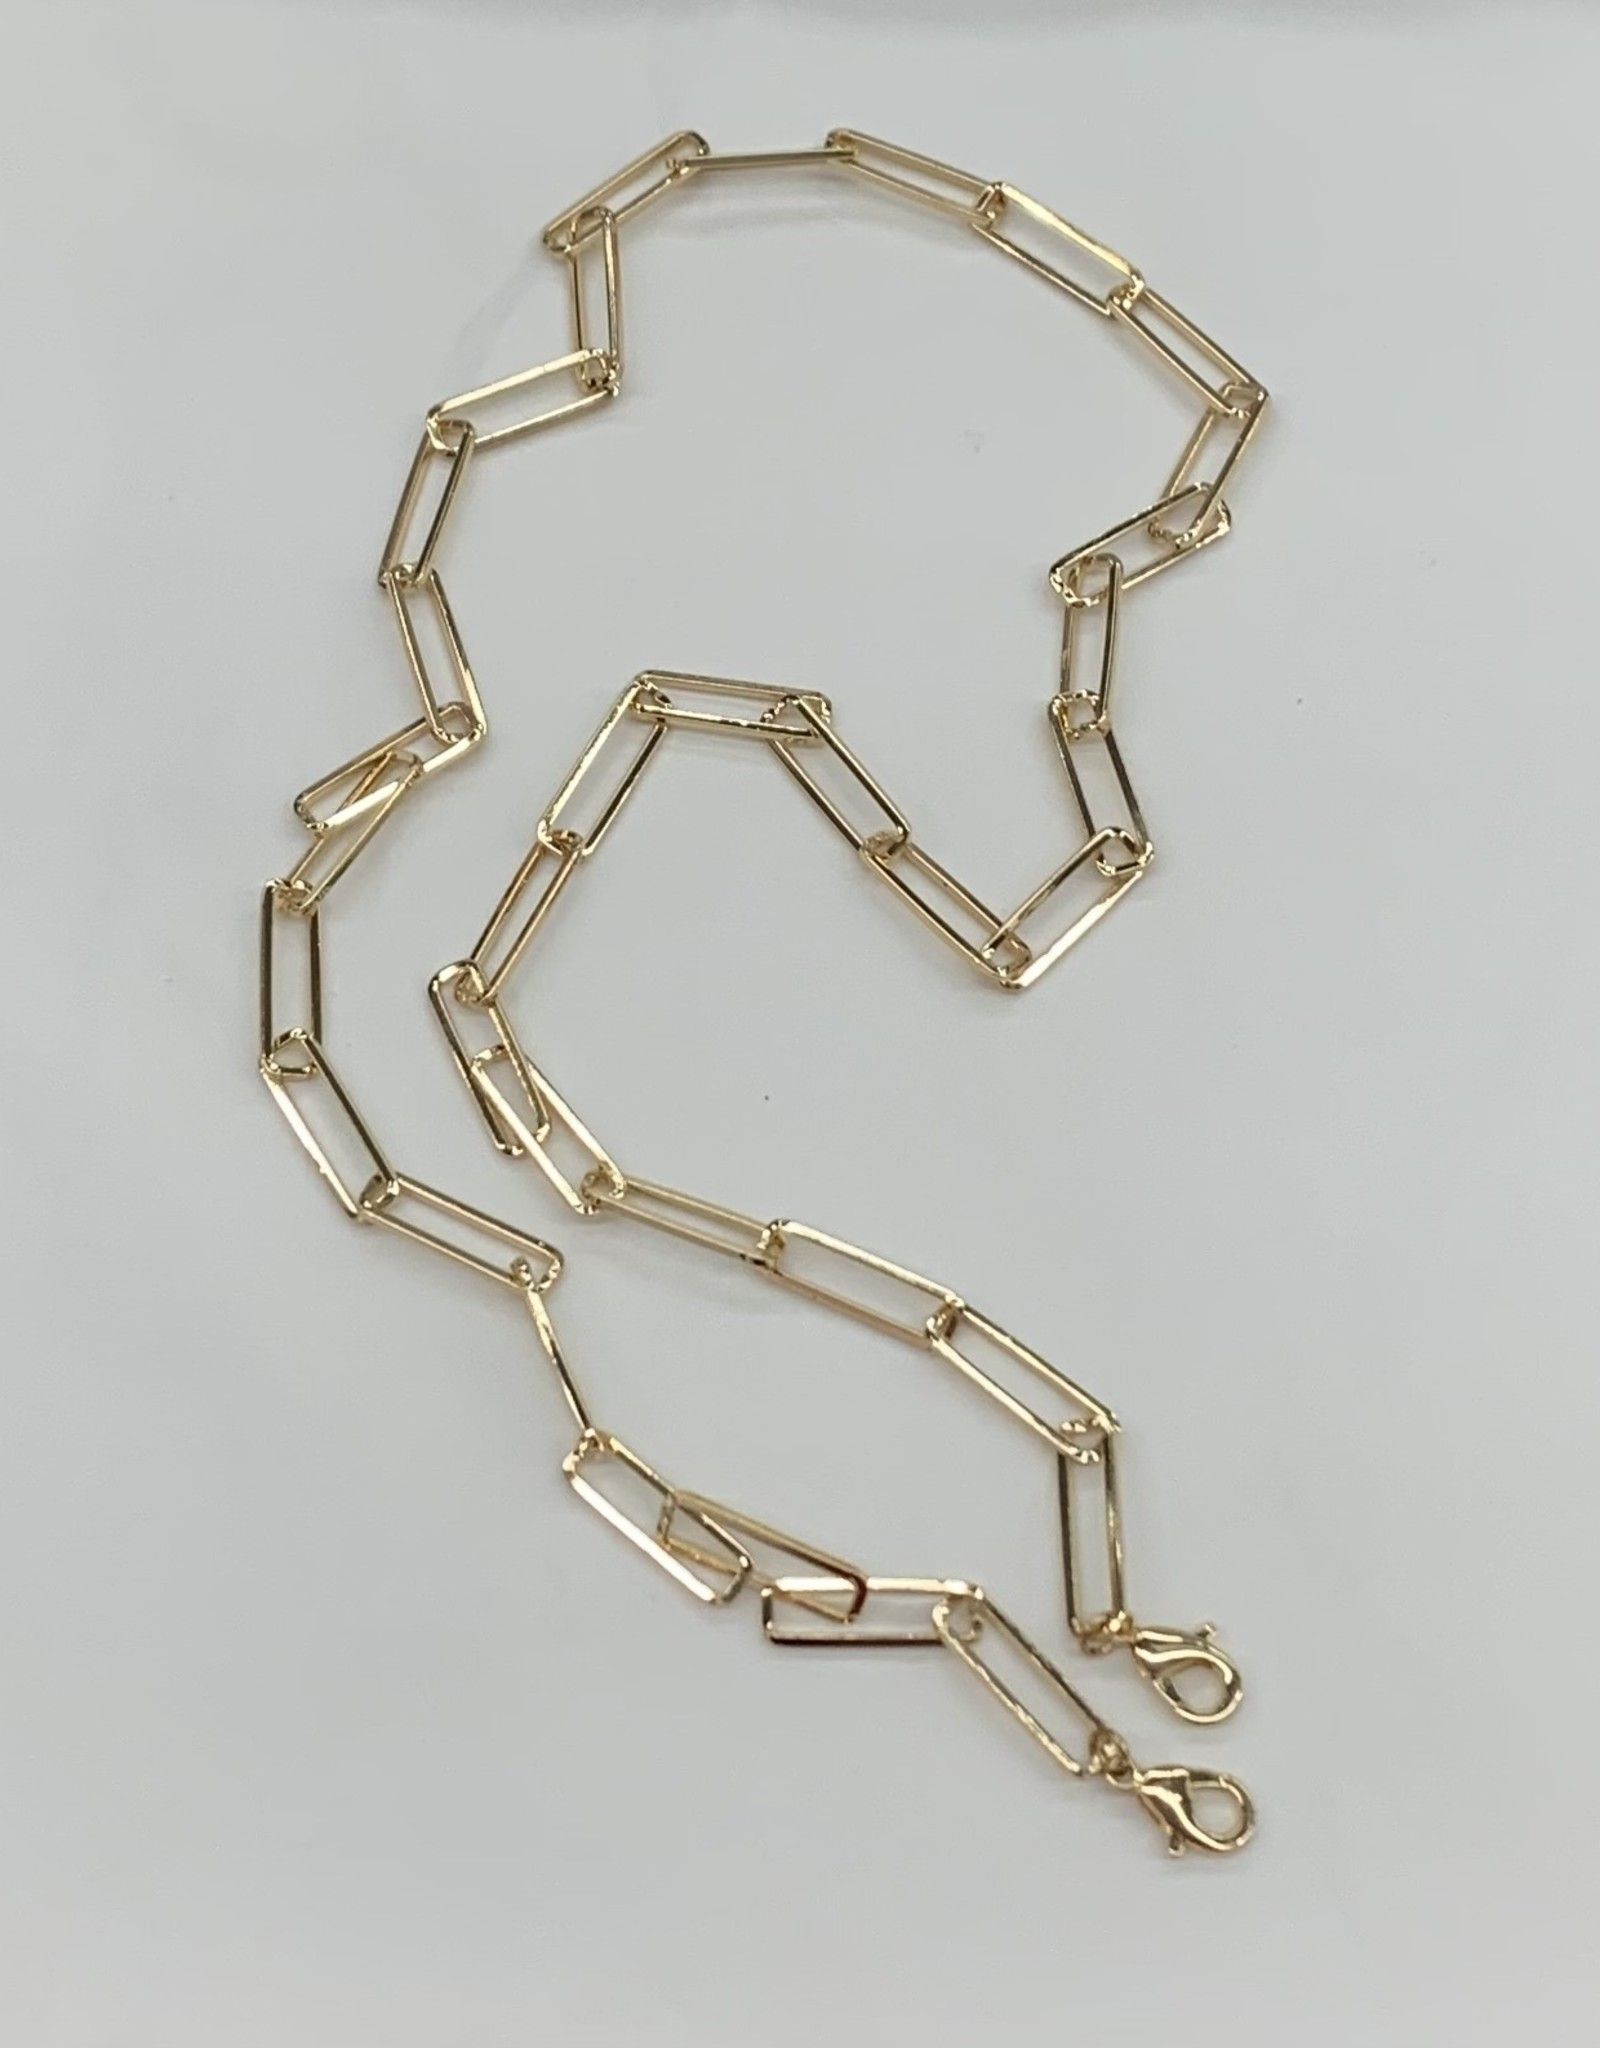 Merx Mask Chains